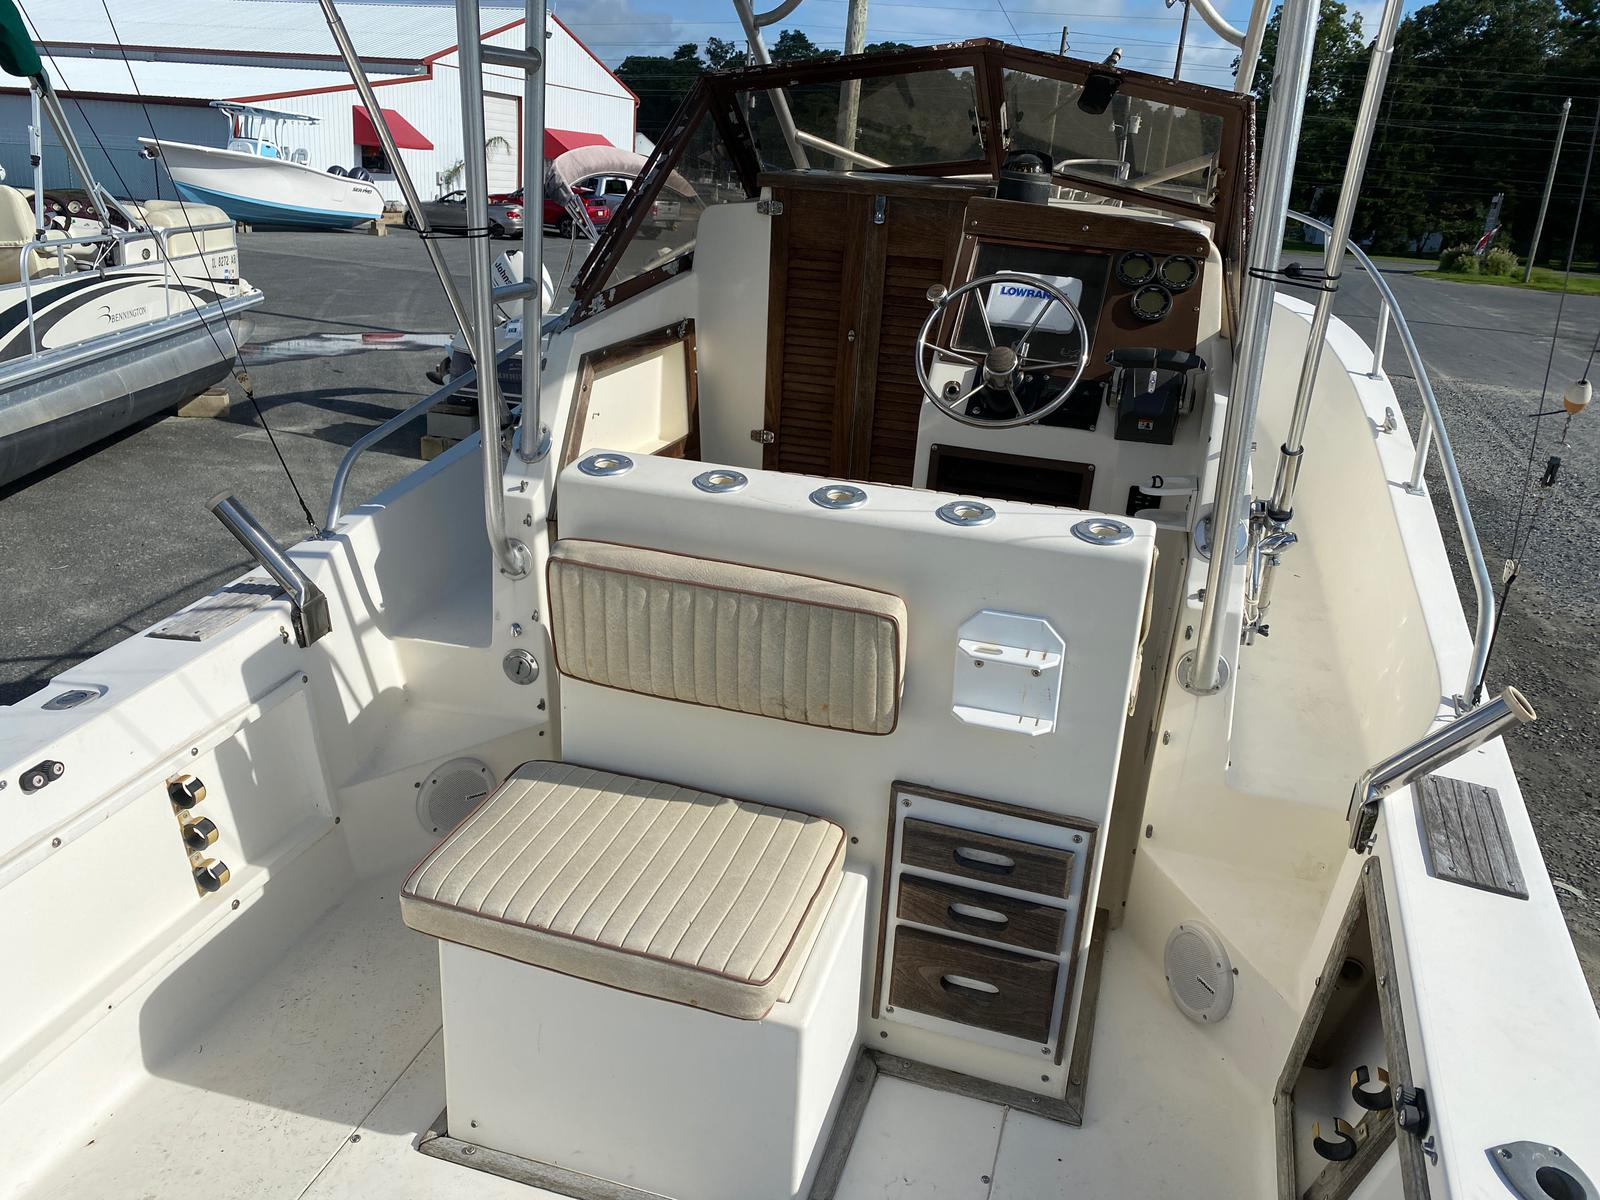 1989 Mako boat for sale, model of the boat is 260 Walkaround Boat & Image # 10 of 15